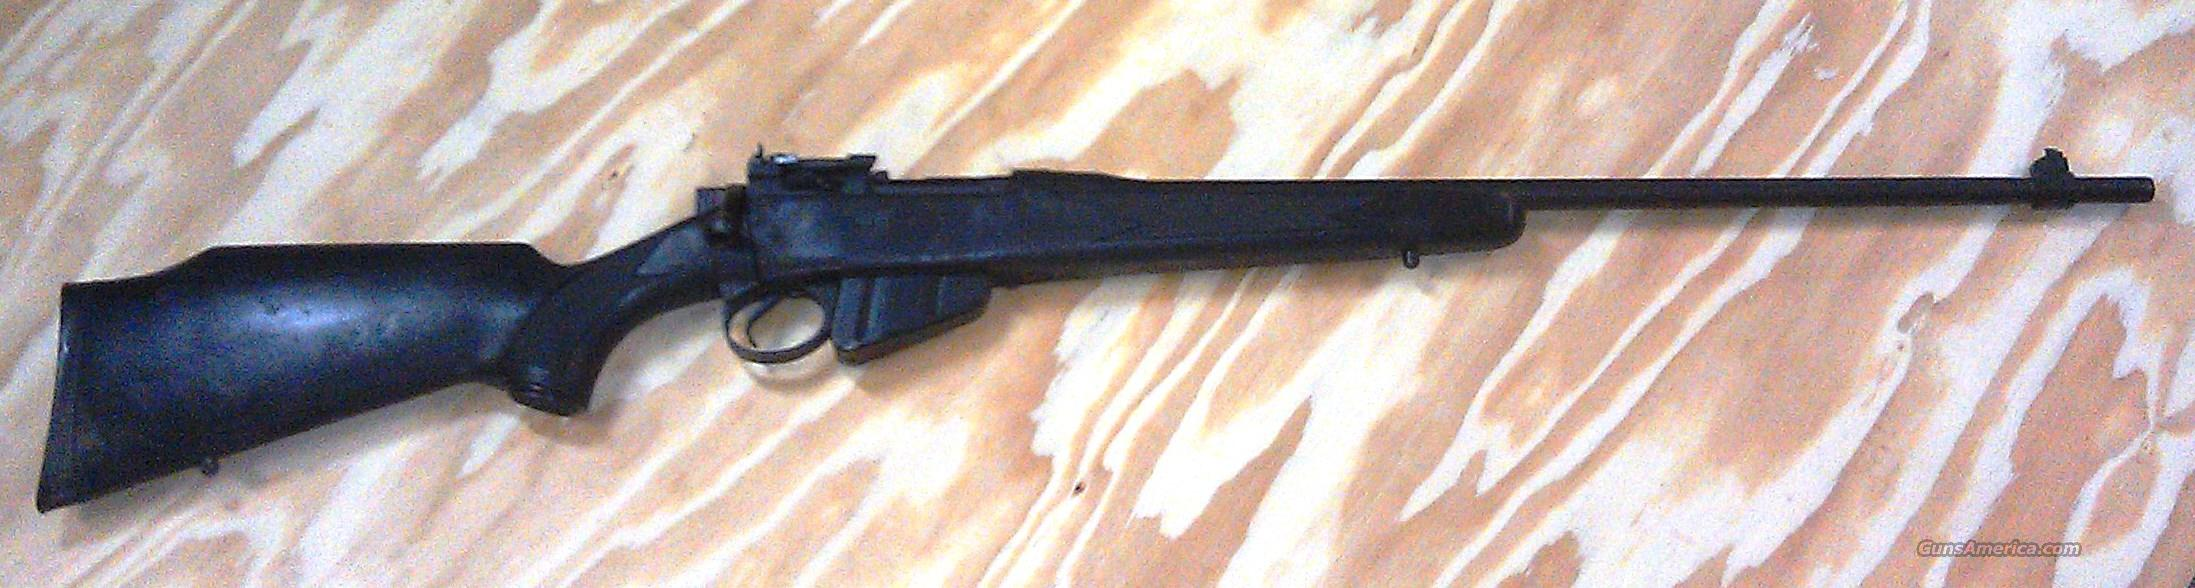 ENFIELD No. 4 Sporter .303 w/synthetic matte black stock  parkerized. NICE!!!  Guns > Rifles > Enfield Rifle